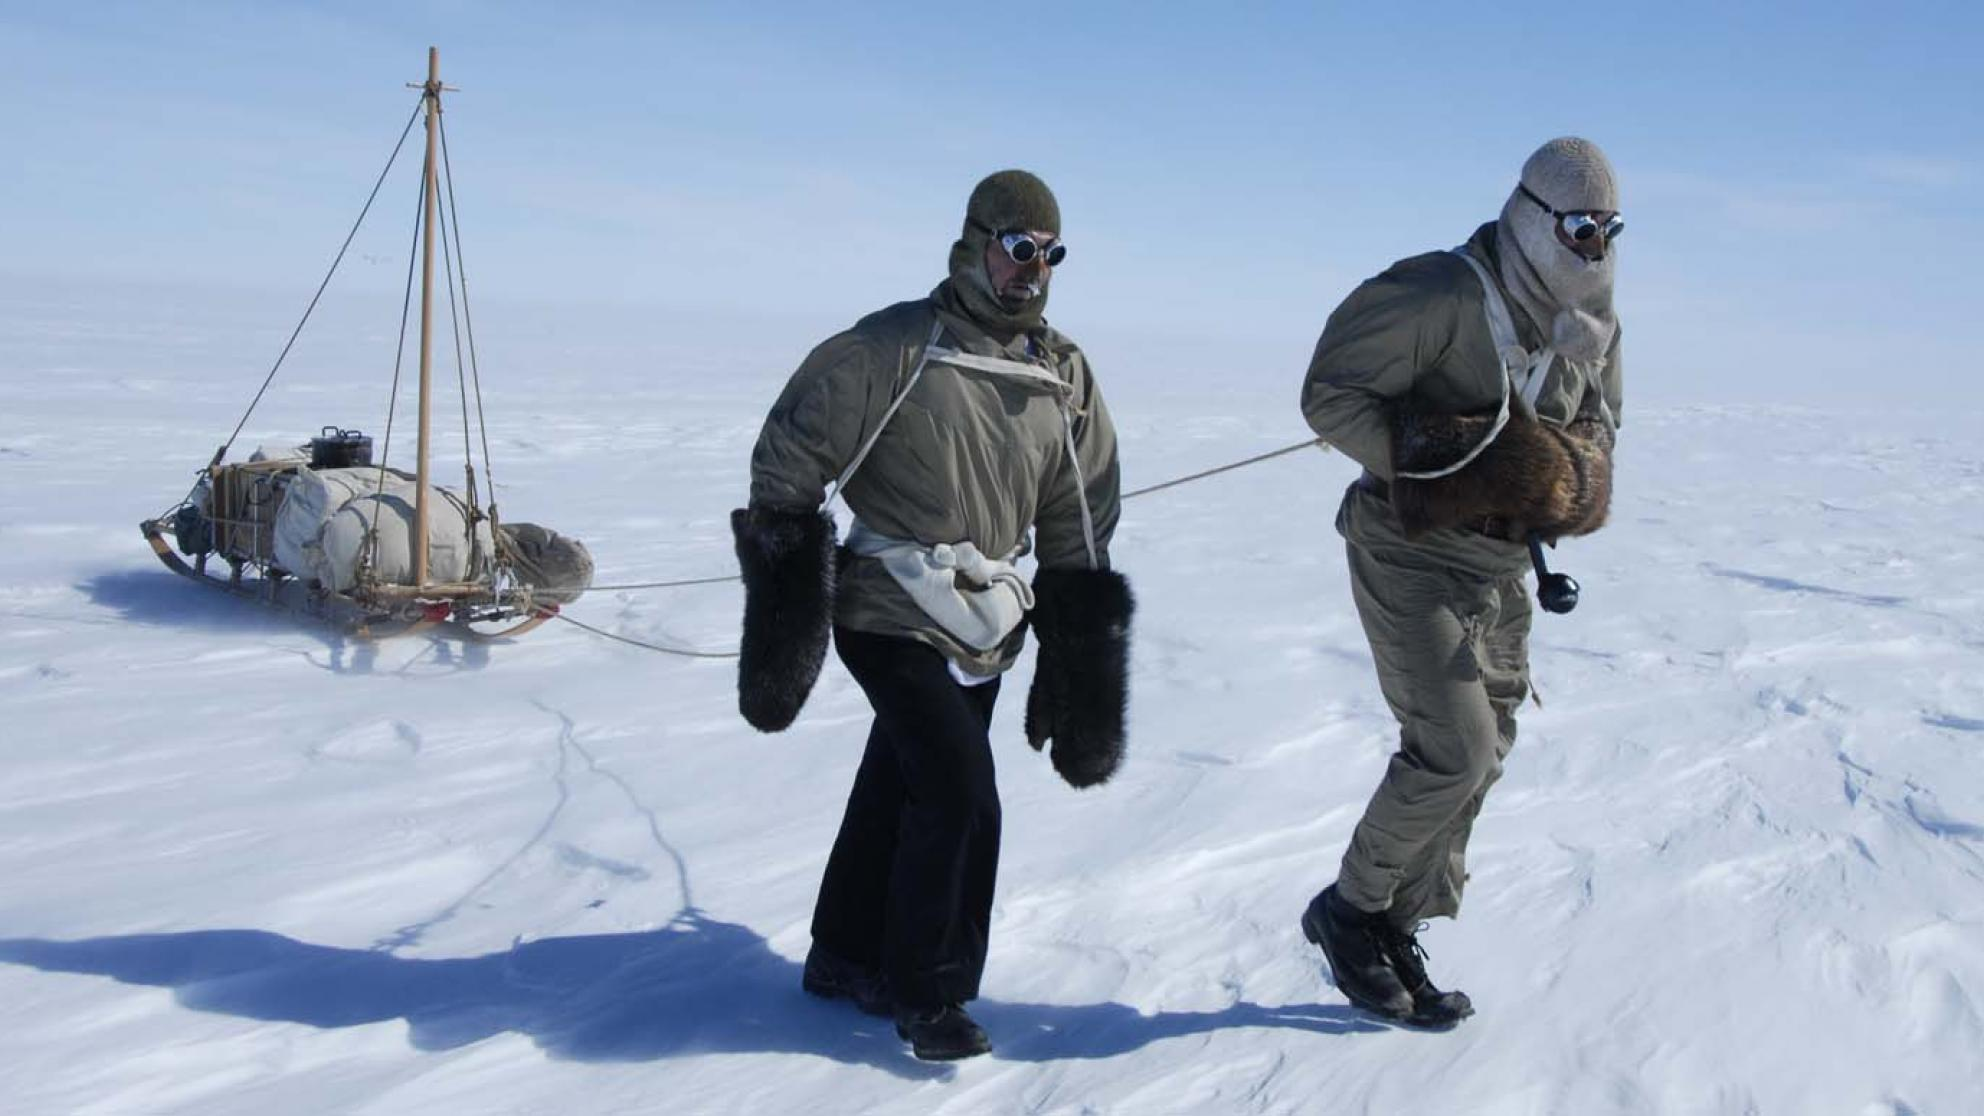 Tim Jarvis and John Stoukala pulling a sledge across the snow in Antarctica for a documentary retracing Mawson's expedition